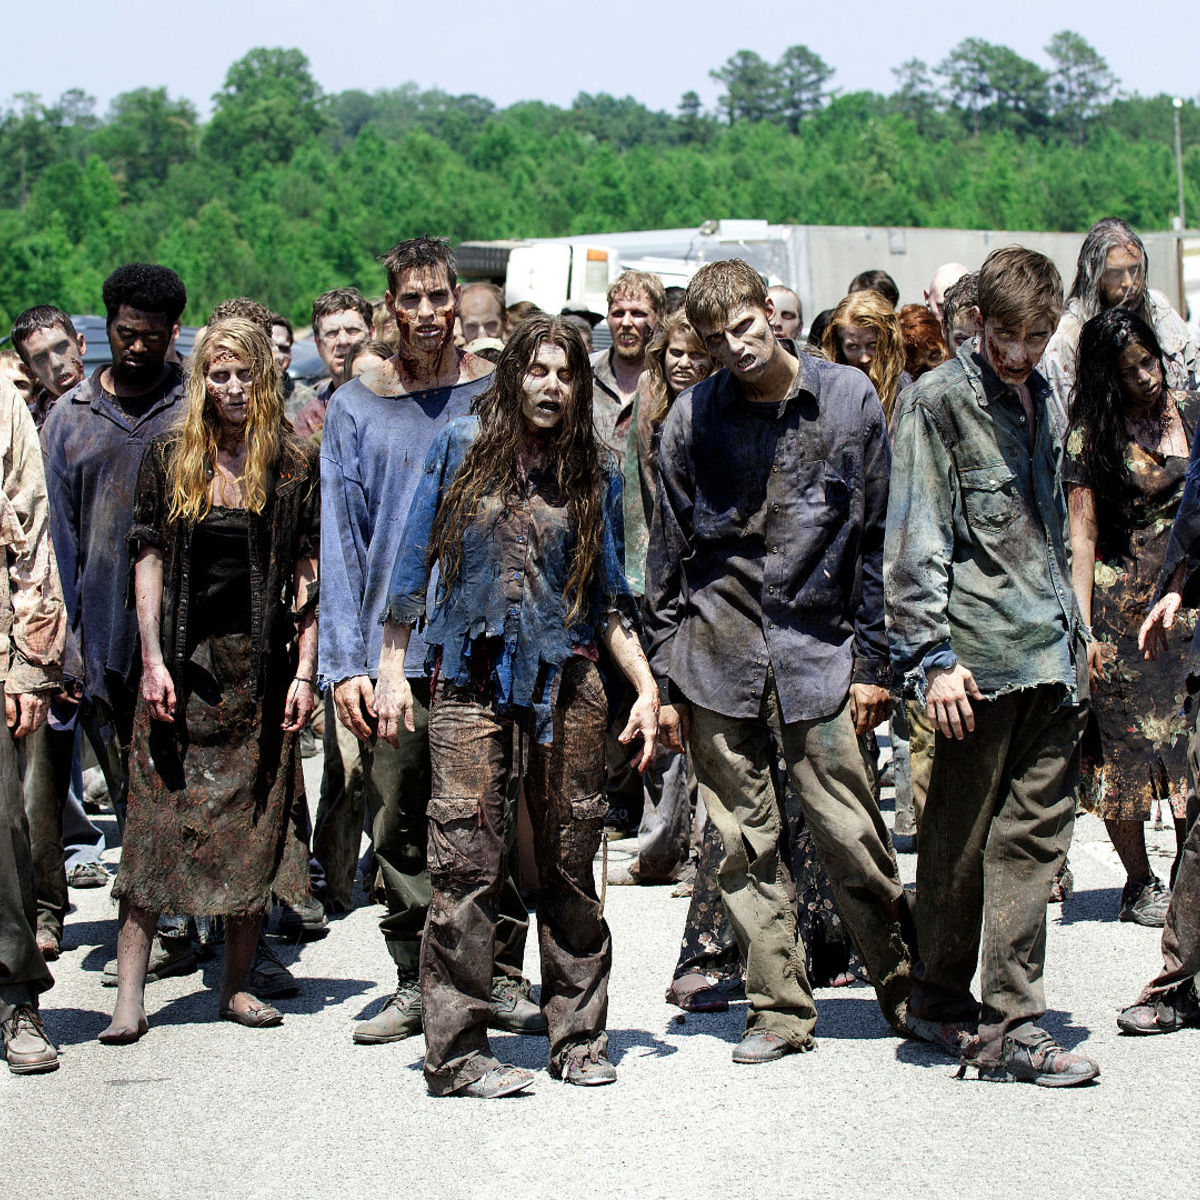 18870-the-walking-dead-the-walking-dead_0.jpg